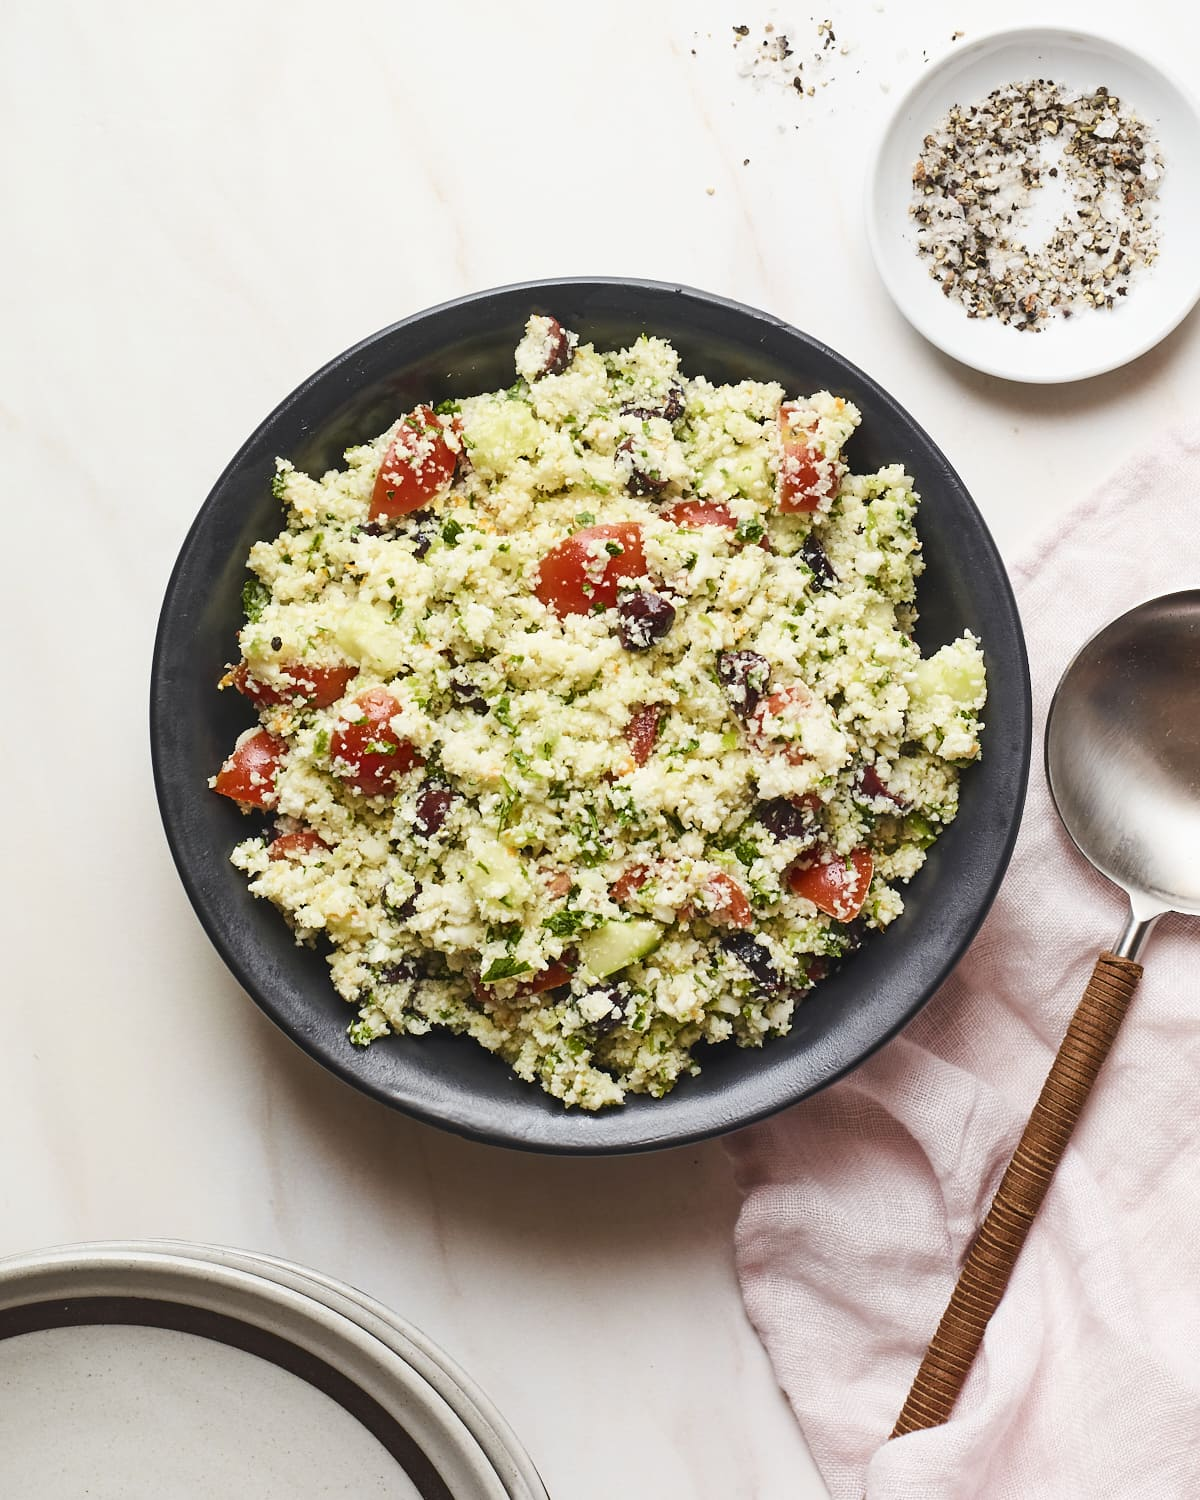 Serving plate with cauliflower tabbouleh. Salt and pepper and a serving spoon are beside the plate.